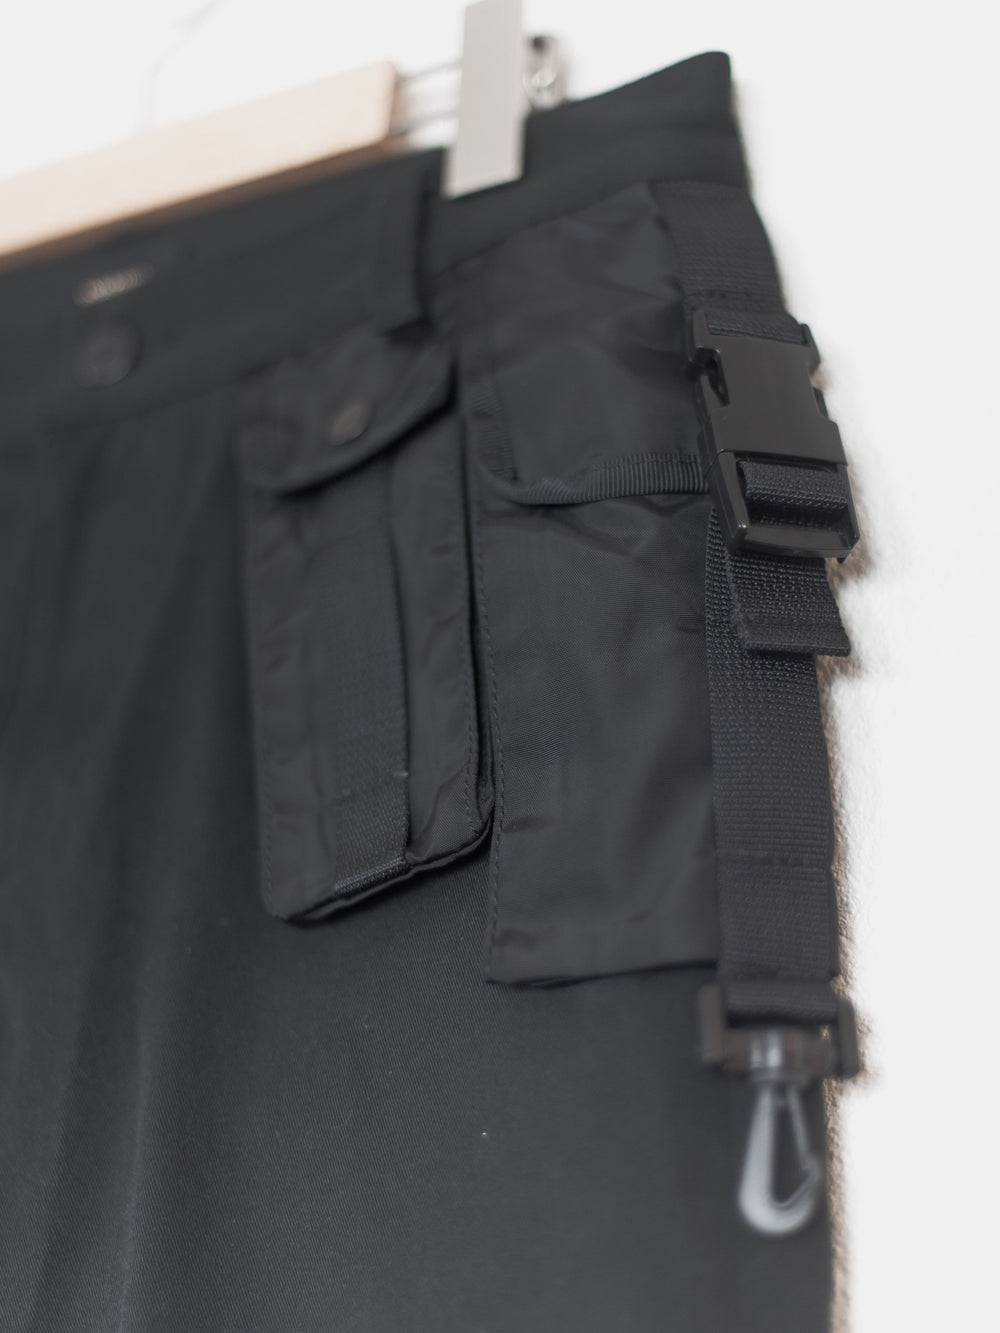 Undercover SS15 Multi Pocket Utility Pants